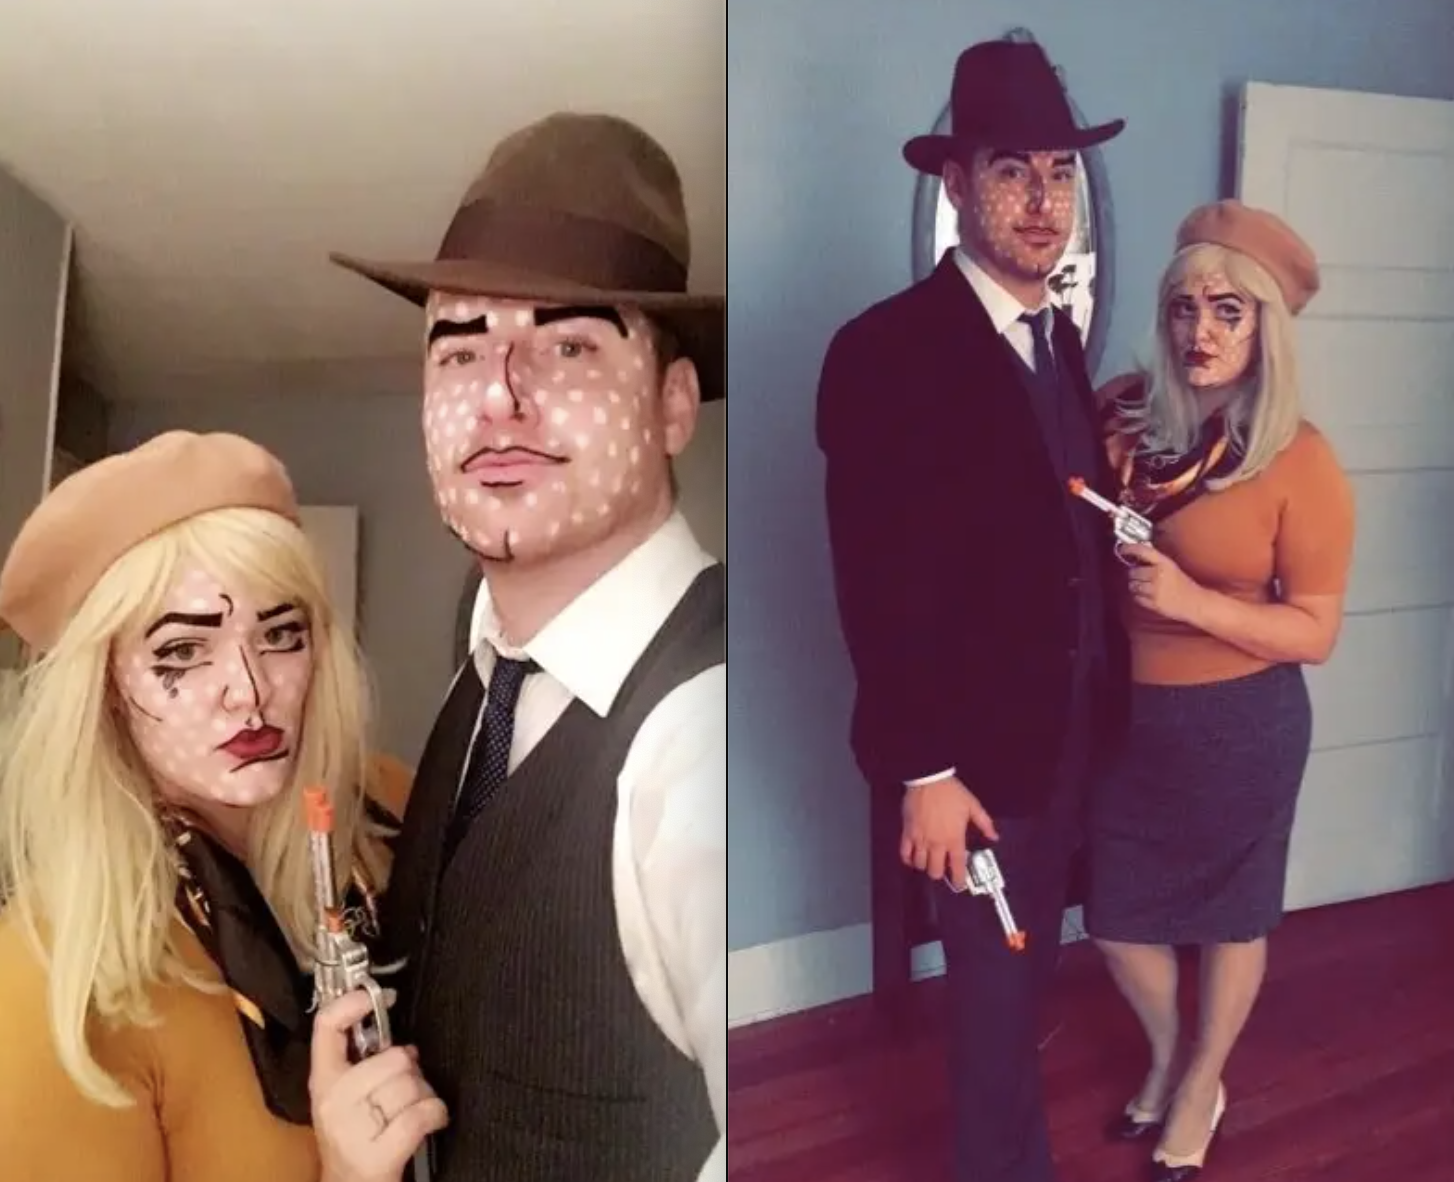 A couple dressed as Bonnie and Clyde, but with makeup over their faces so it looks like they're pop art caricatures